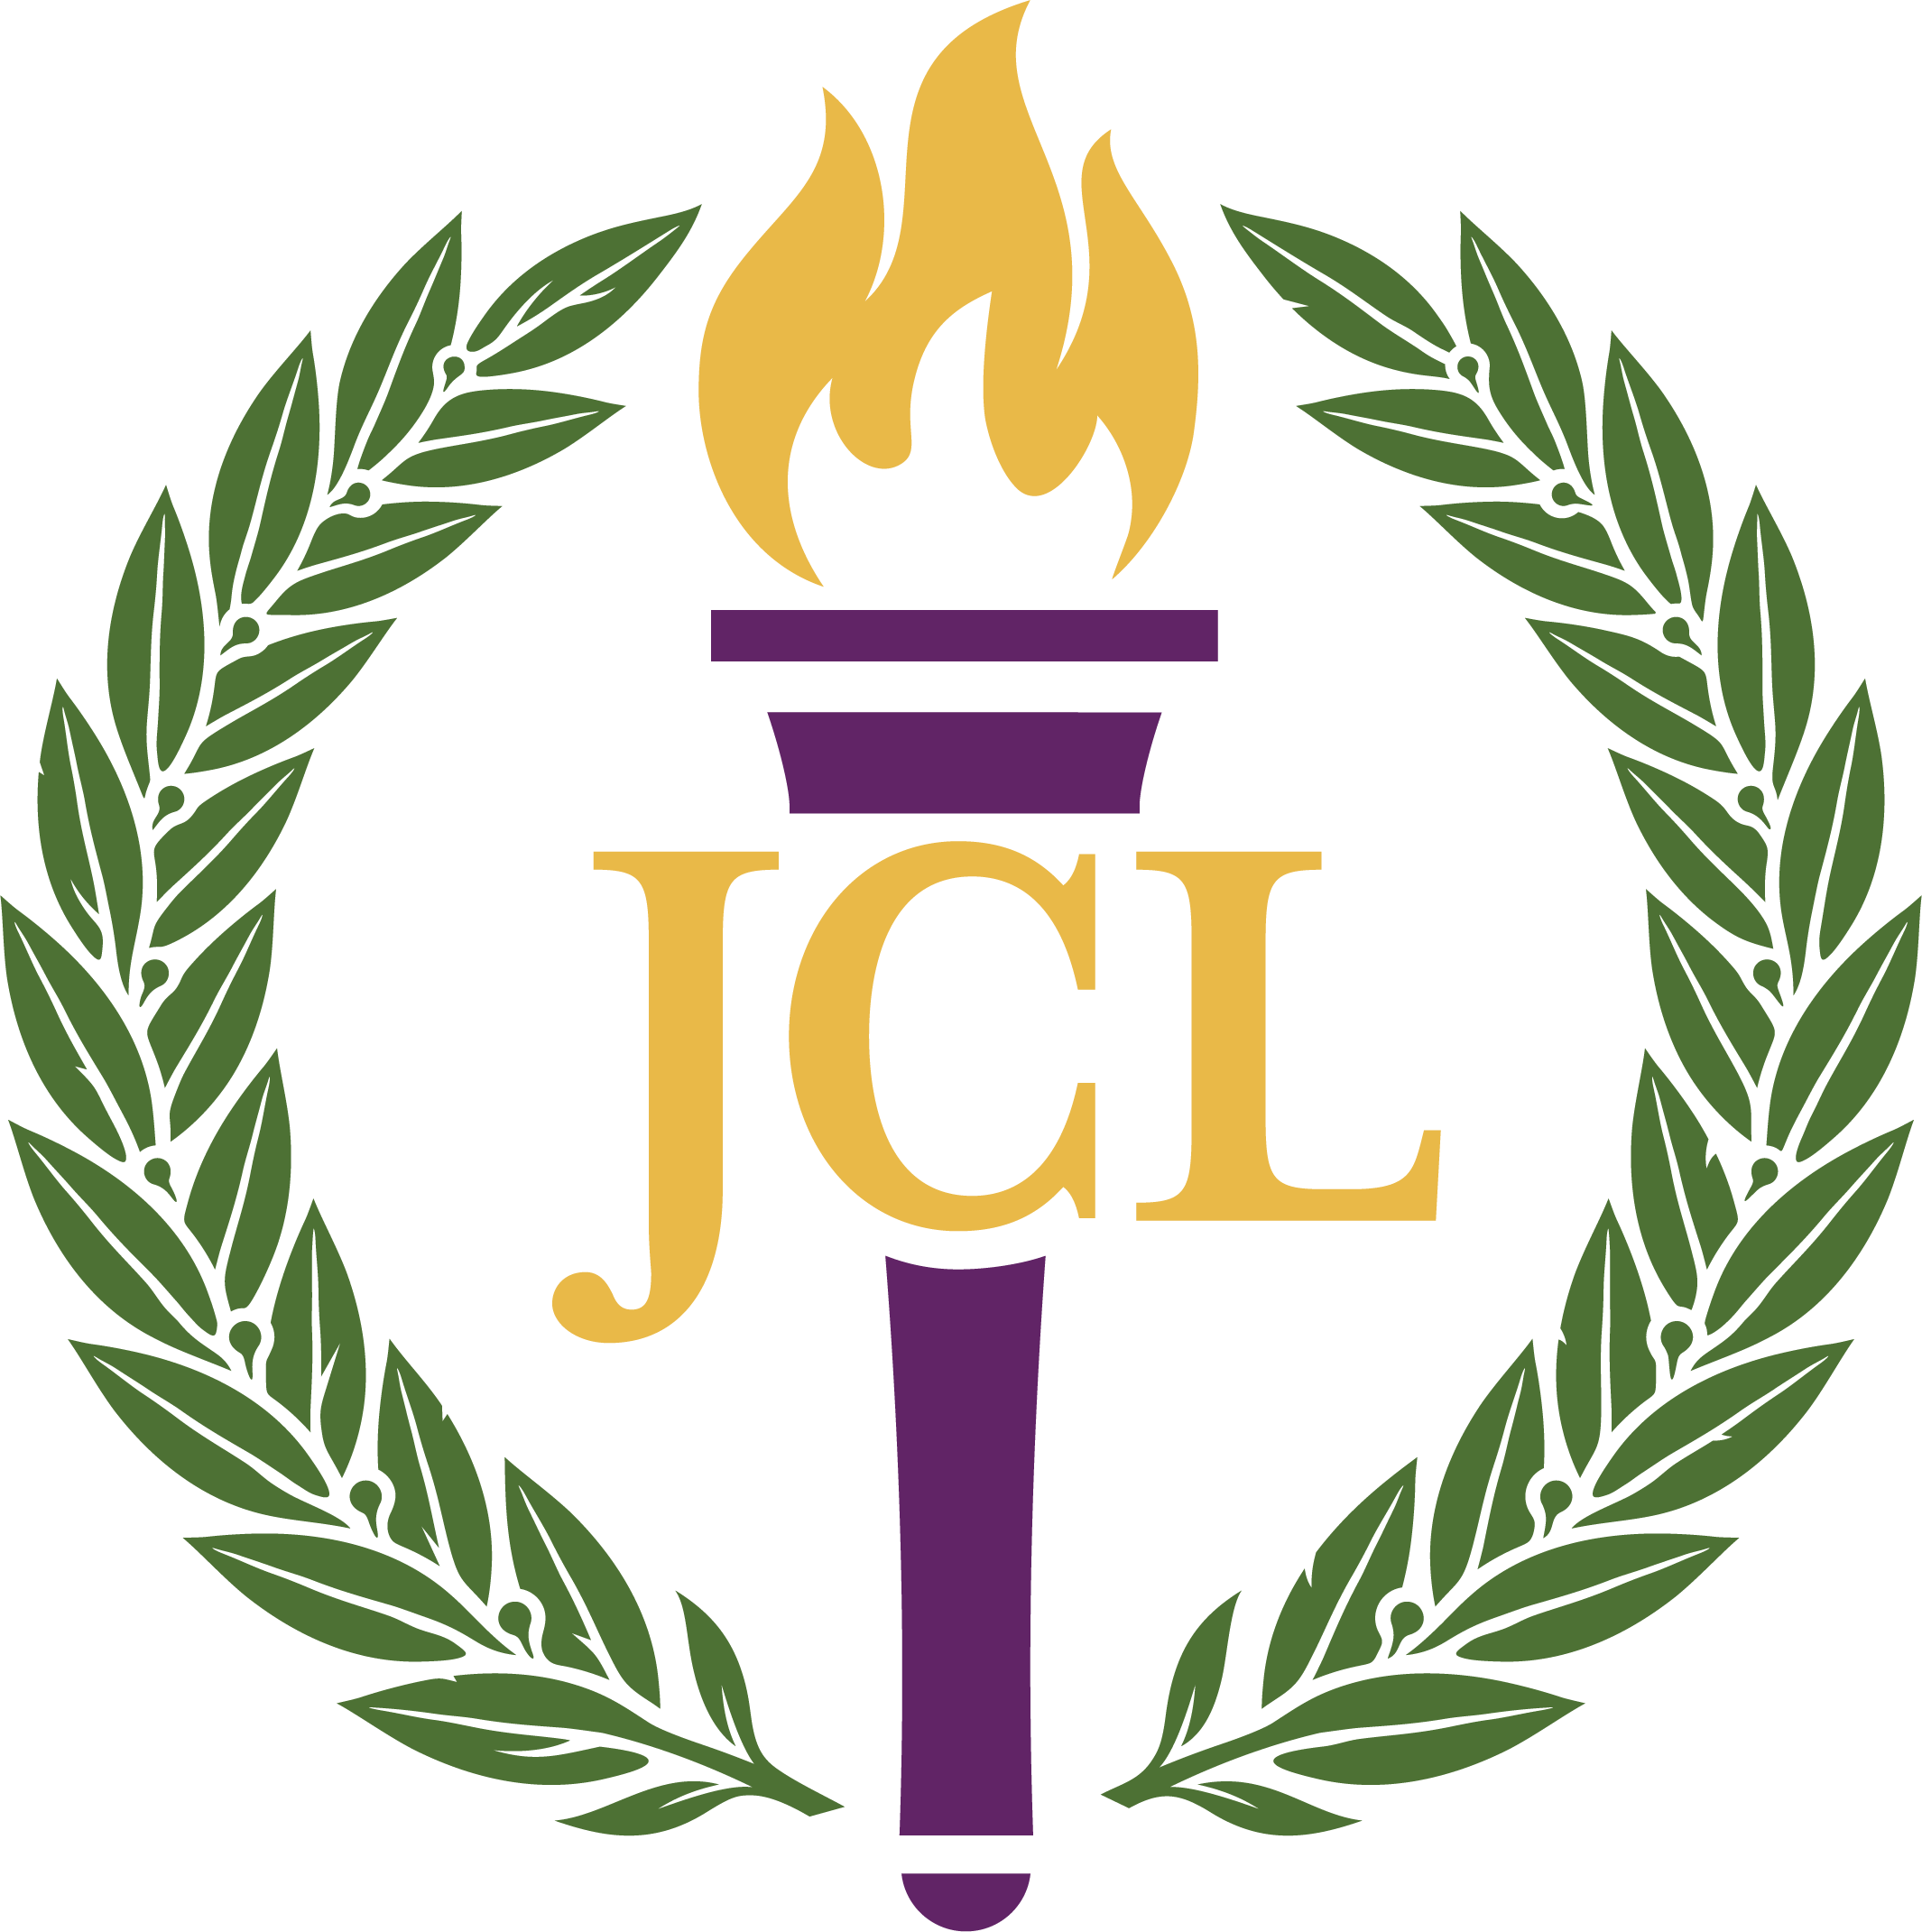 njcl creative writing contest